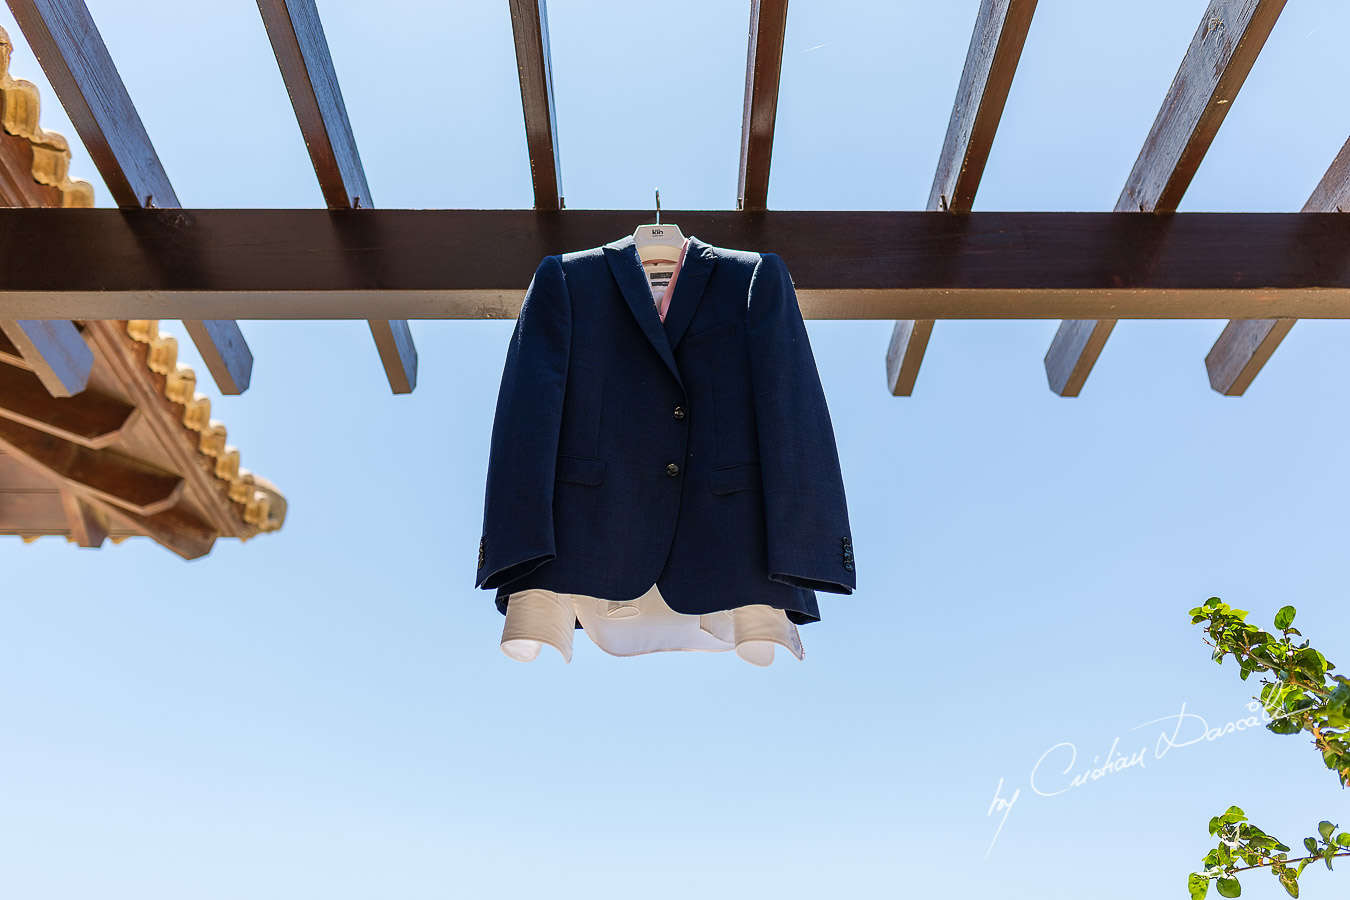 Groom's details at Aphrodite Hills Resort captured during a wedding by Cristian Dascalu.